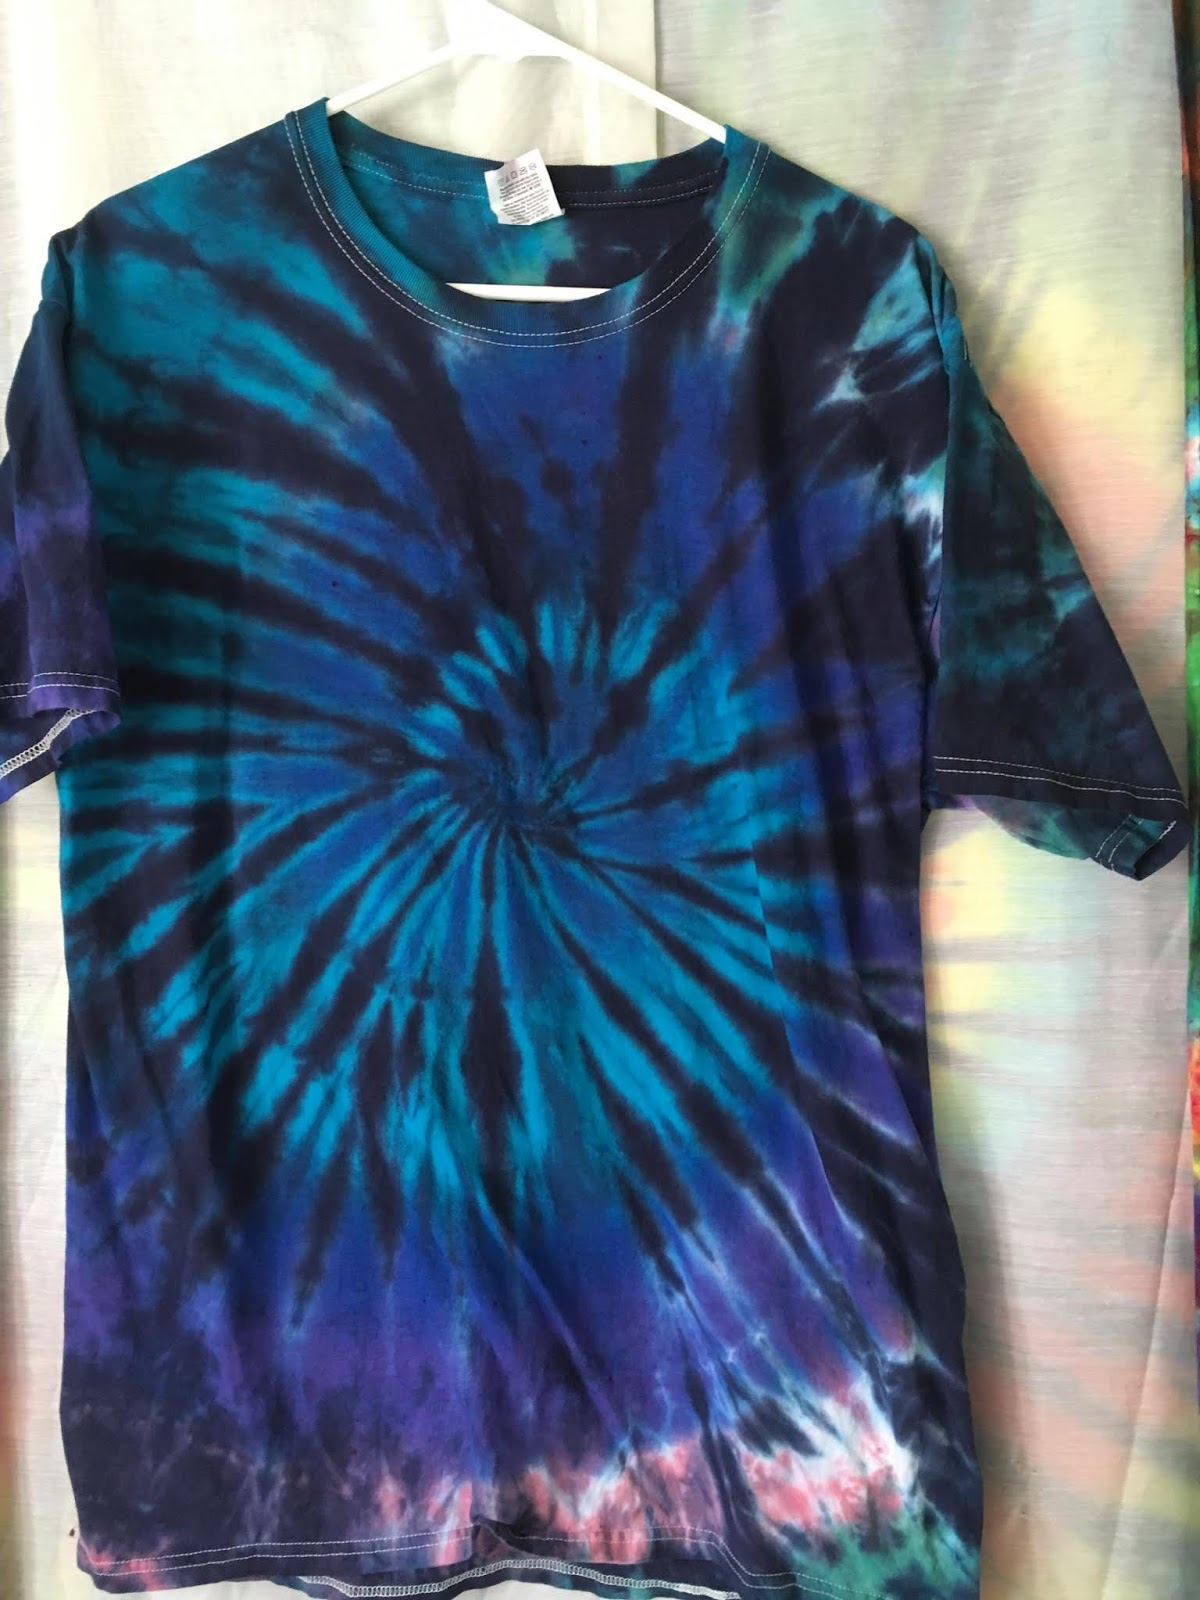 JustATish Designs: The Blues Have It - Tie Dye